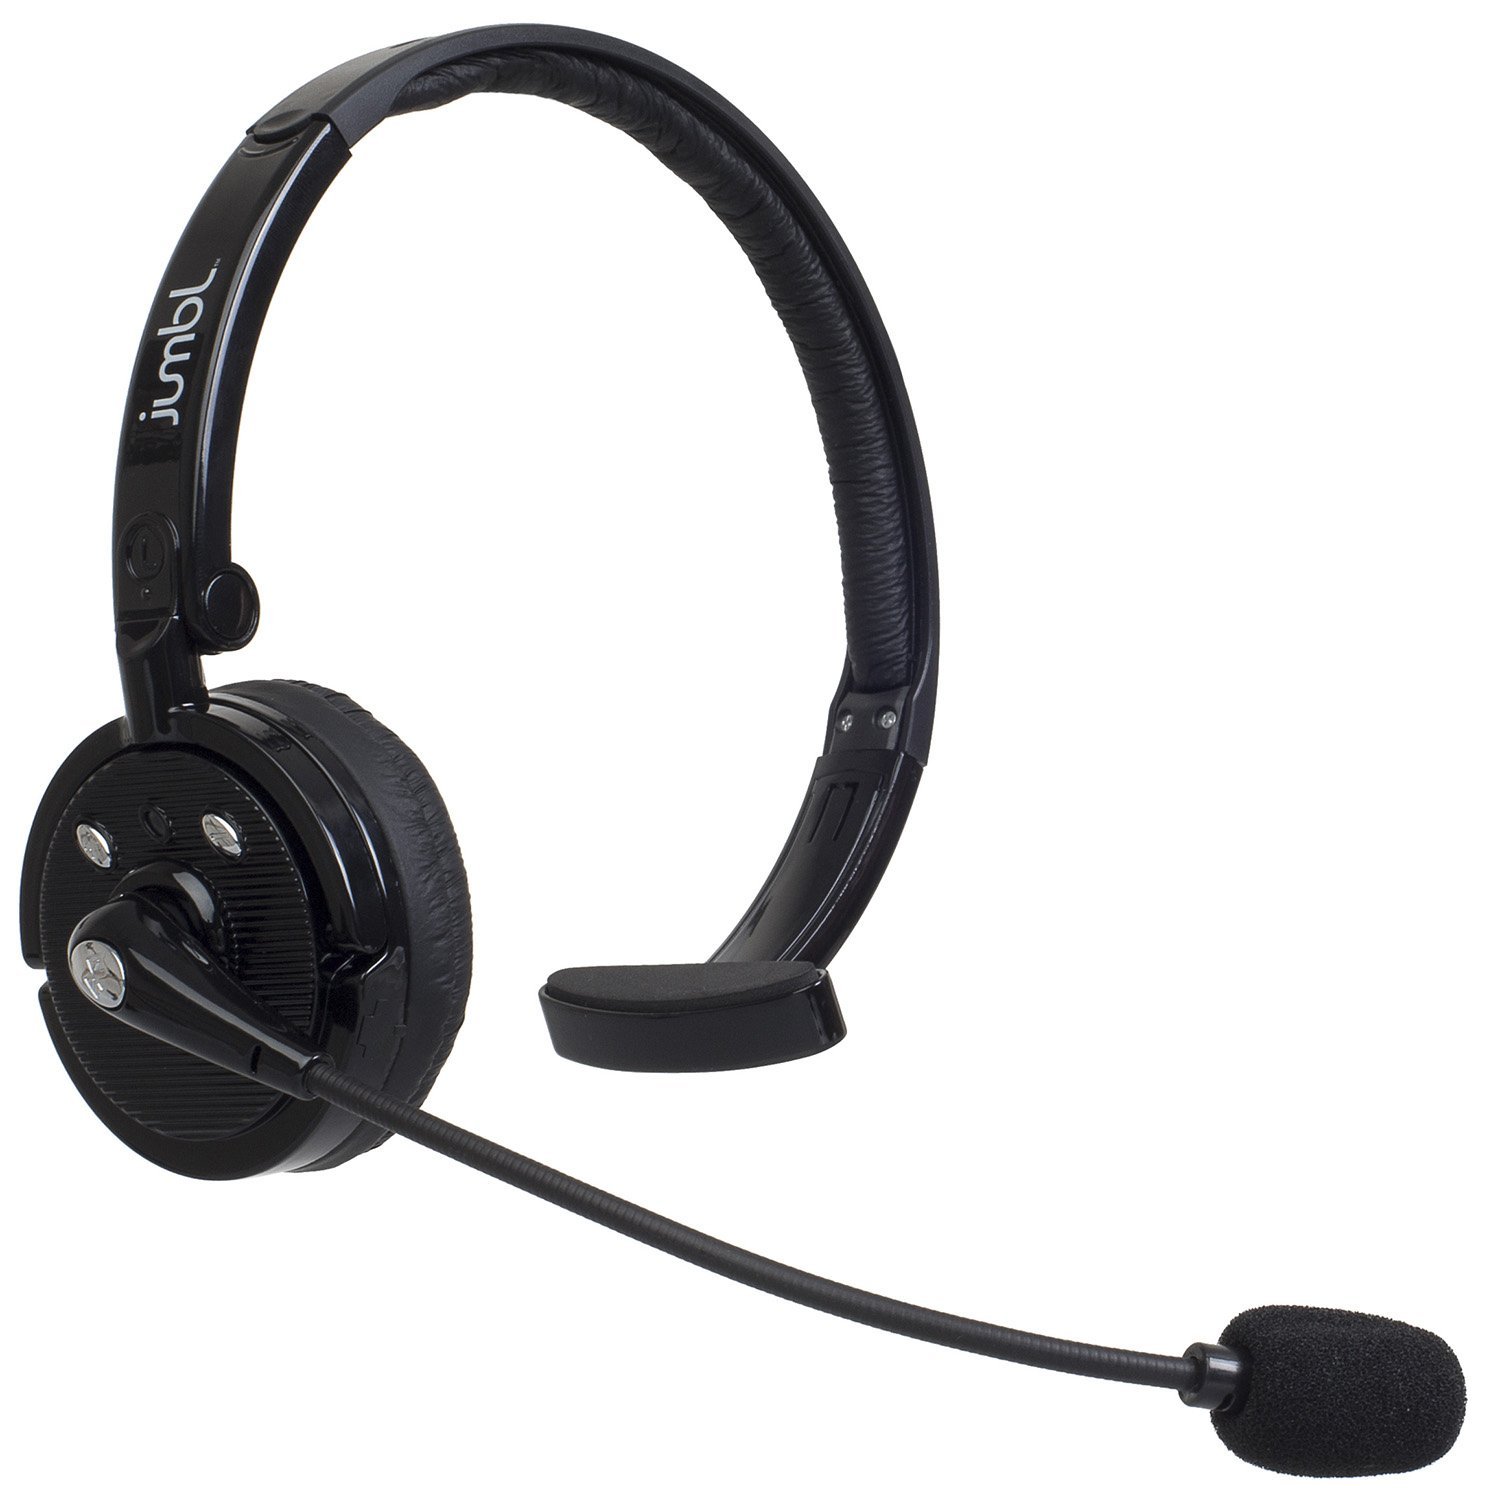 wifi headset for mobile